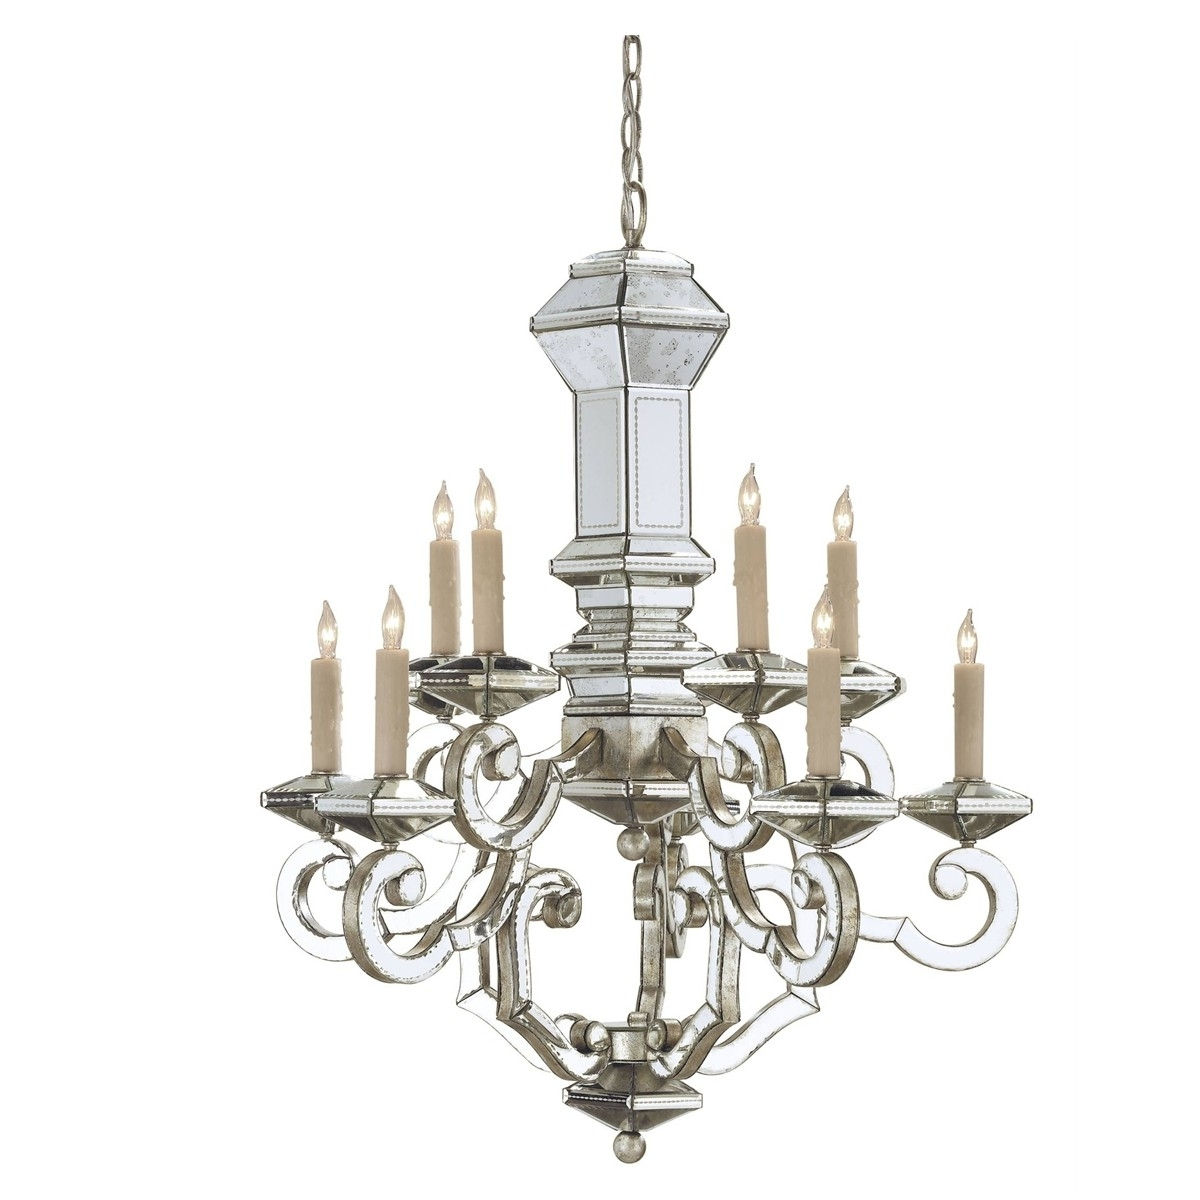 Mirrored Venetian Chandelier – Belle Escape Throughout Best And Newest Mirrored Chandelier (View 16 of 20)